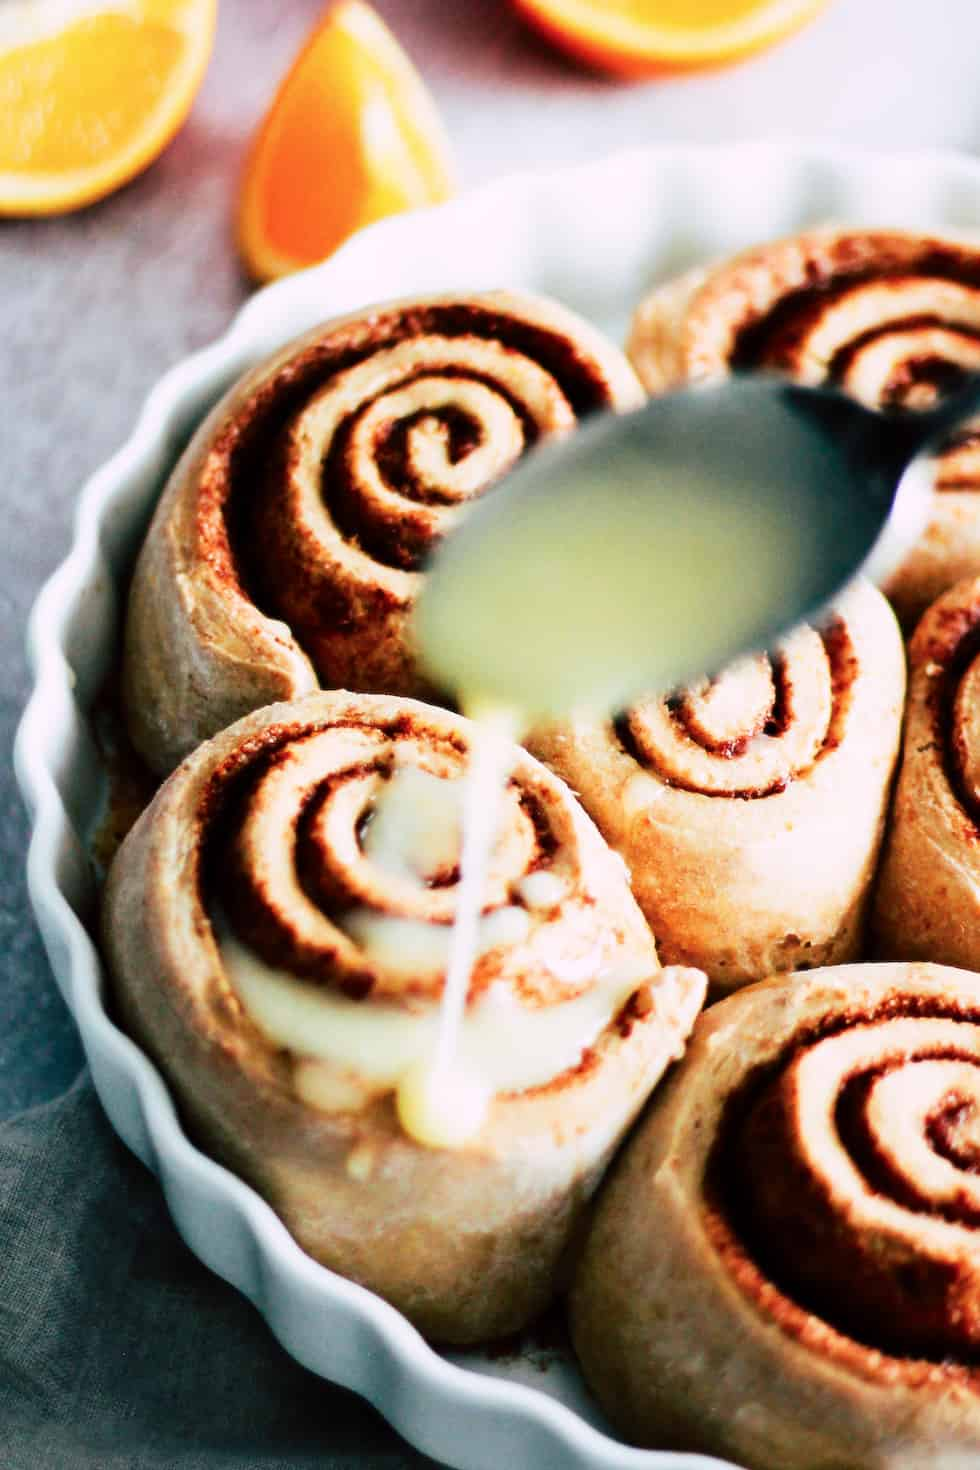 Spoon glazing icing over sweet rolls in a round, white baking dish.